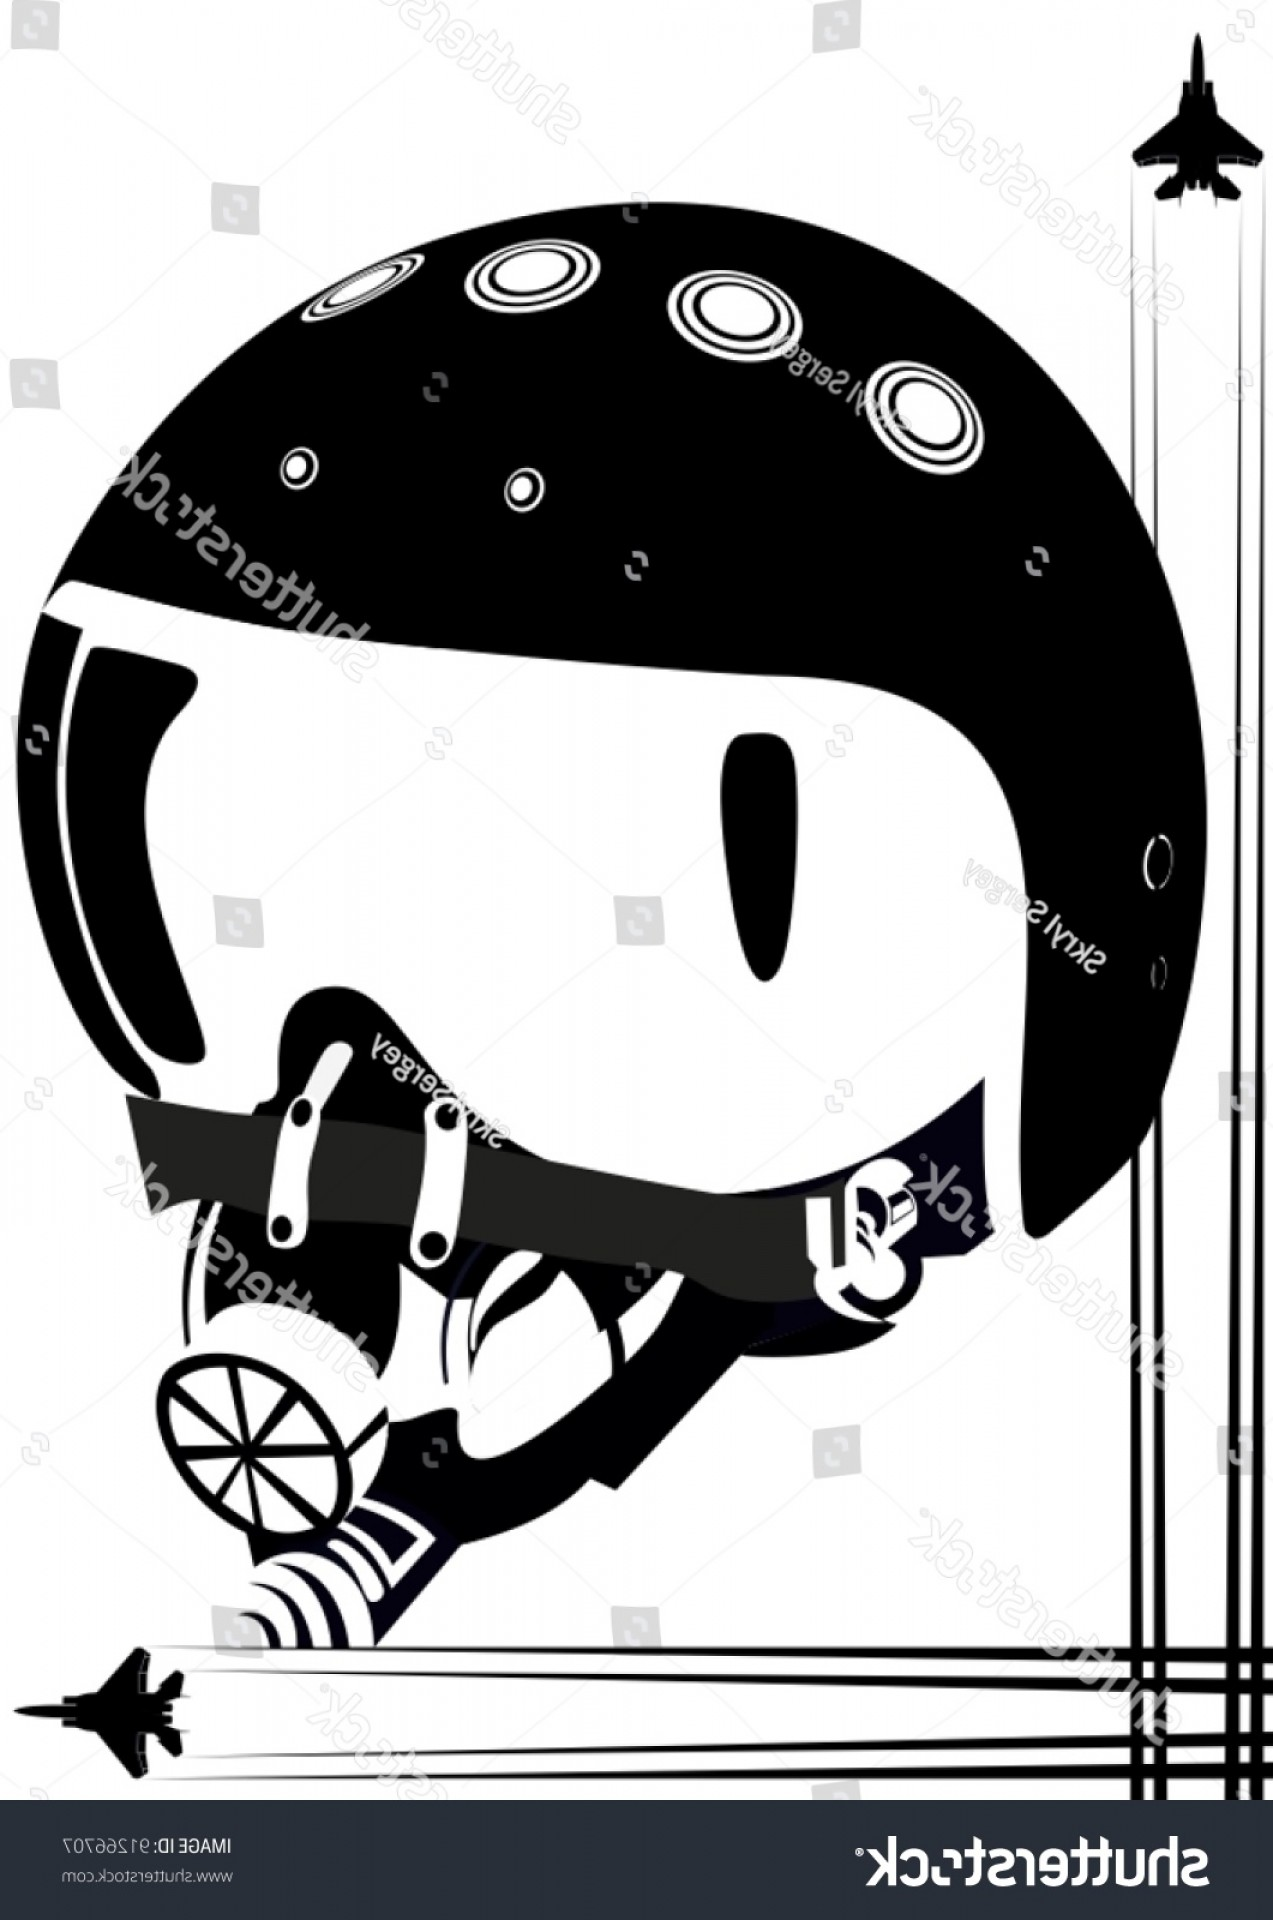 Fighter Helmet Vectors: Modern Helmet Fighter Pilot Black White